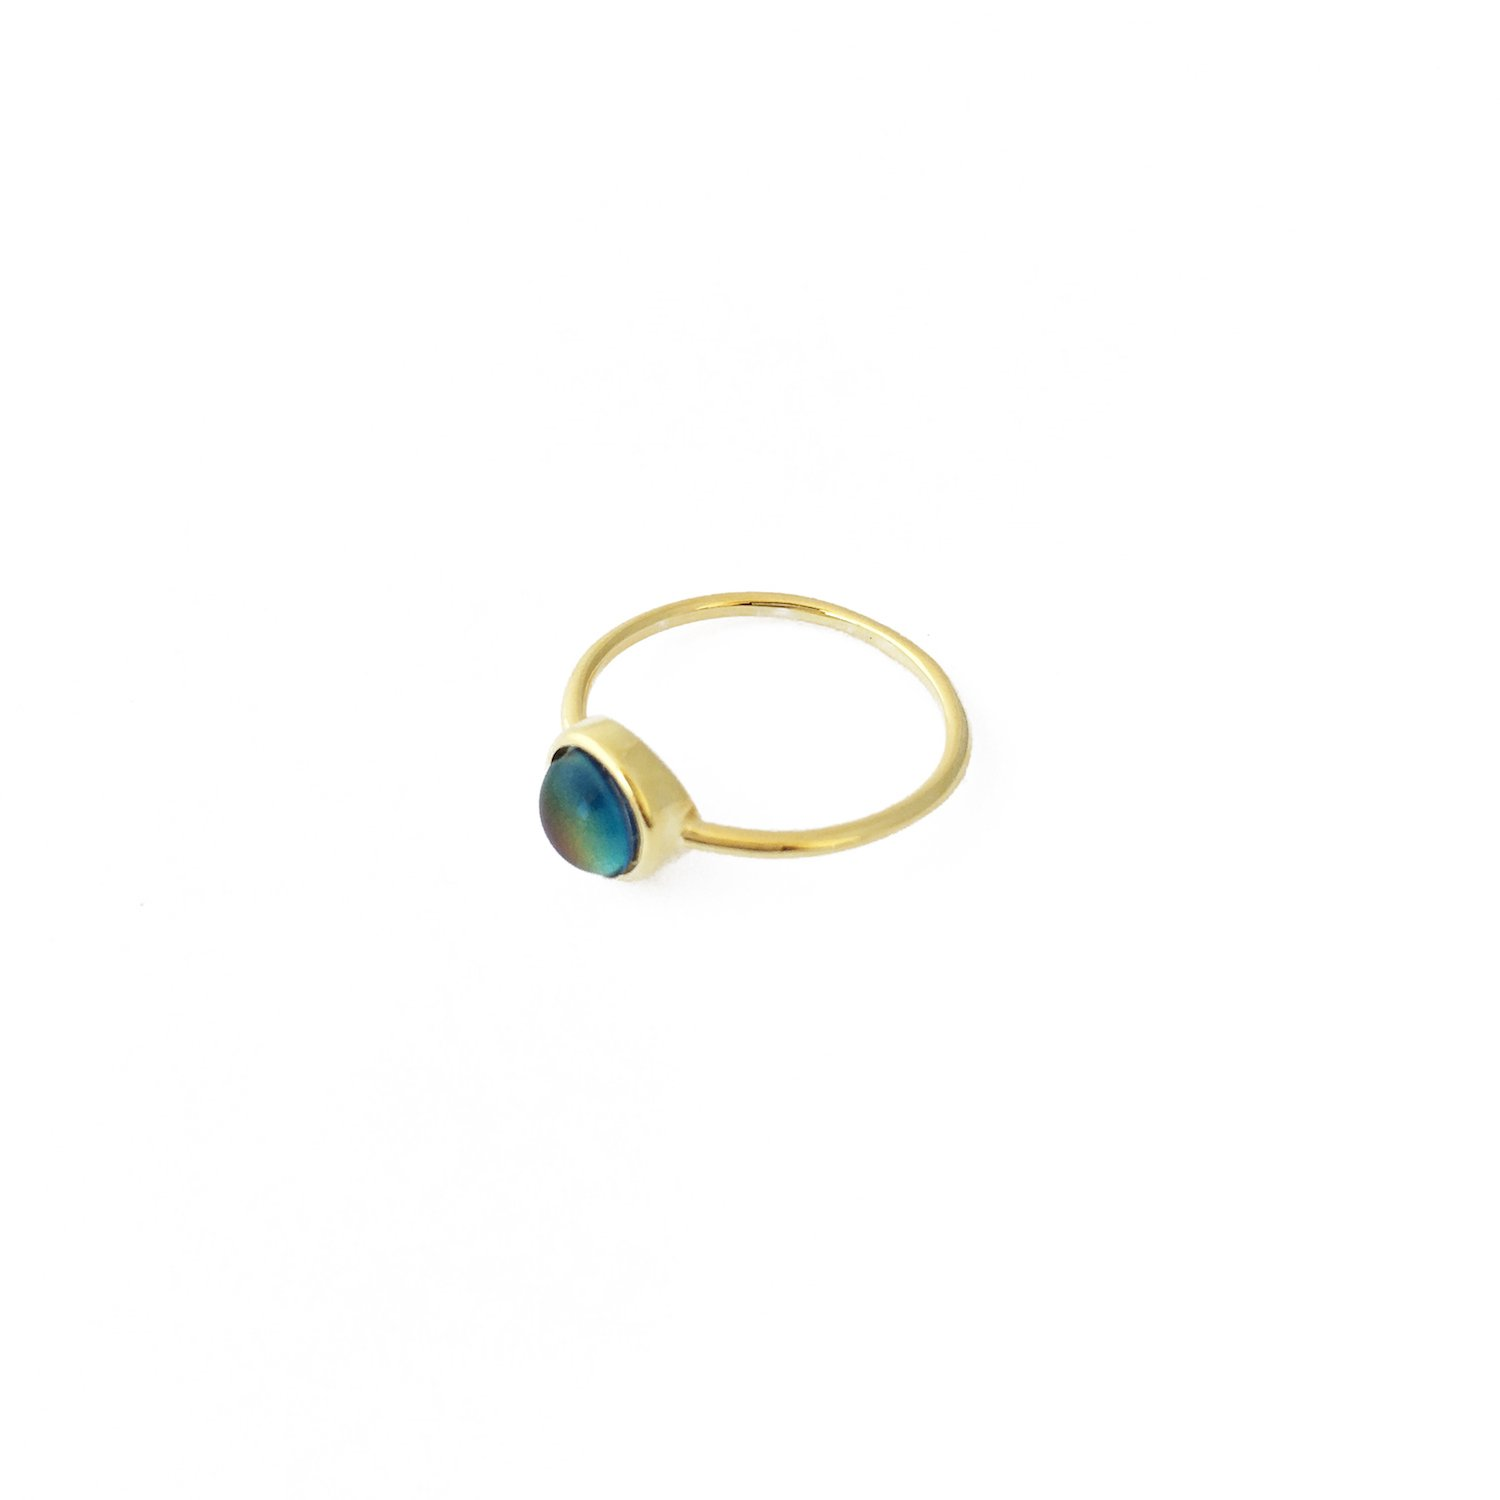 HONEYCAT Mood Ring in Gold, Rose Gold Silver | Minimalist, Delicate Jewelry (Gold 5)